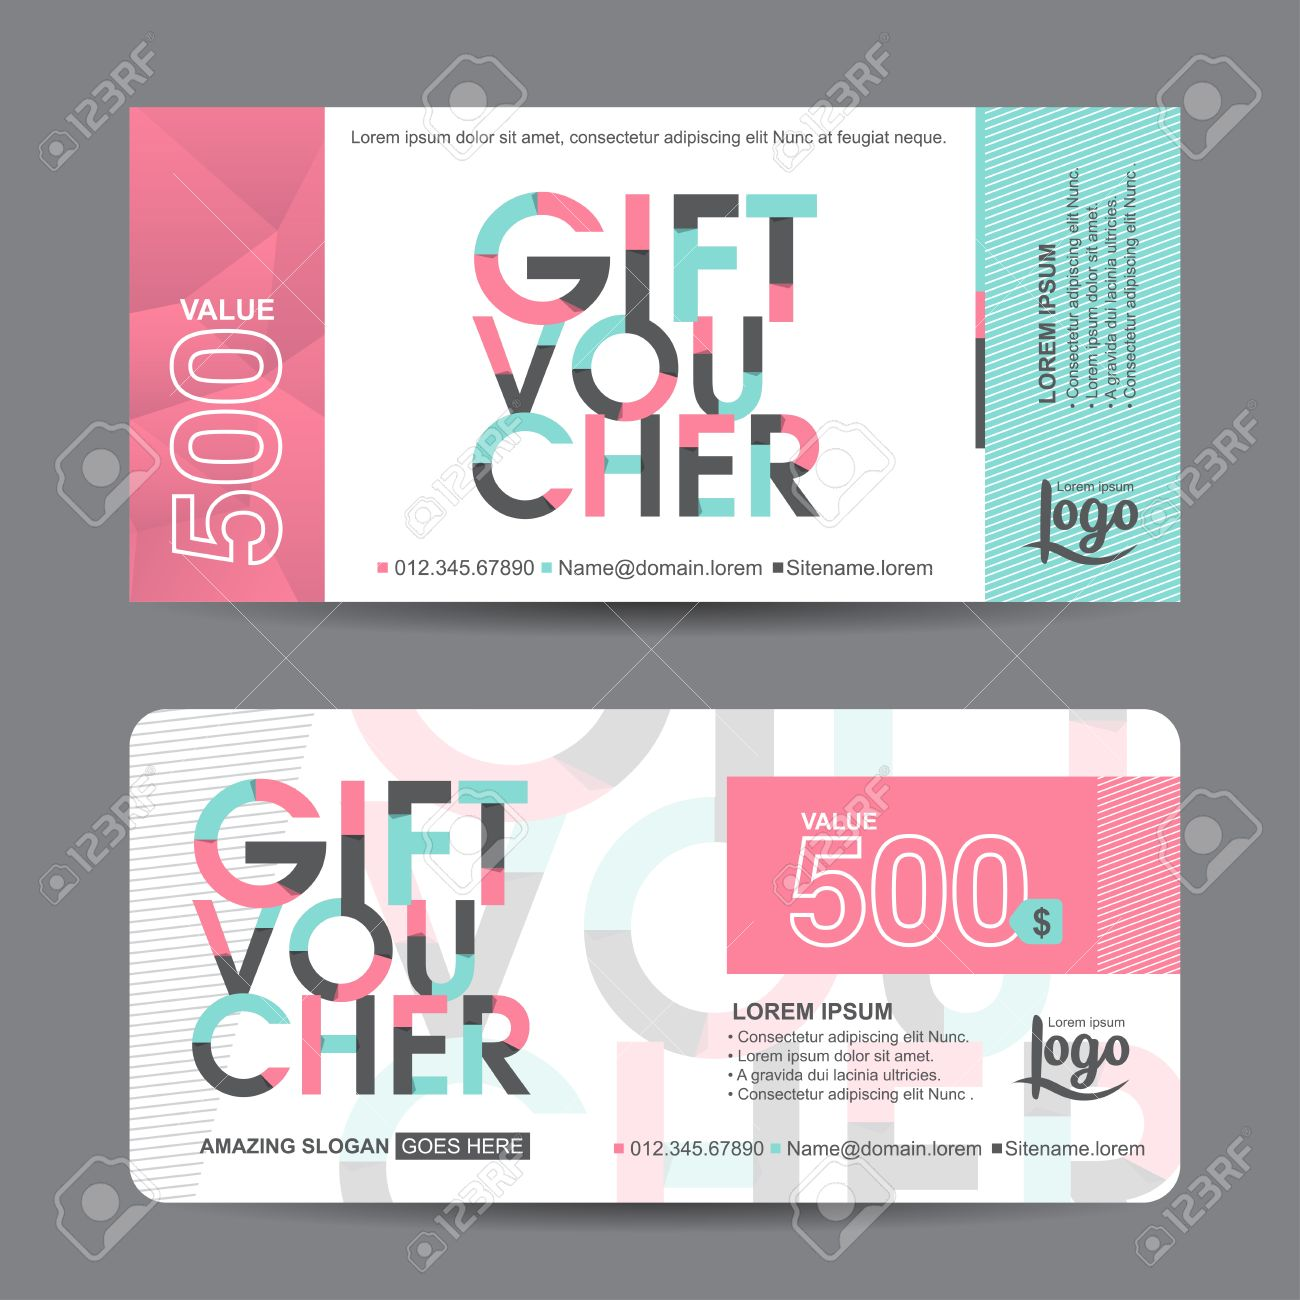 Gift voucher template with colorful patterncute gift voucher gift voucher template with colorful patterncute gift voucher certificate coupon design template collection yadclub Choice Image